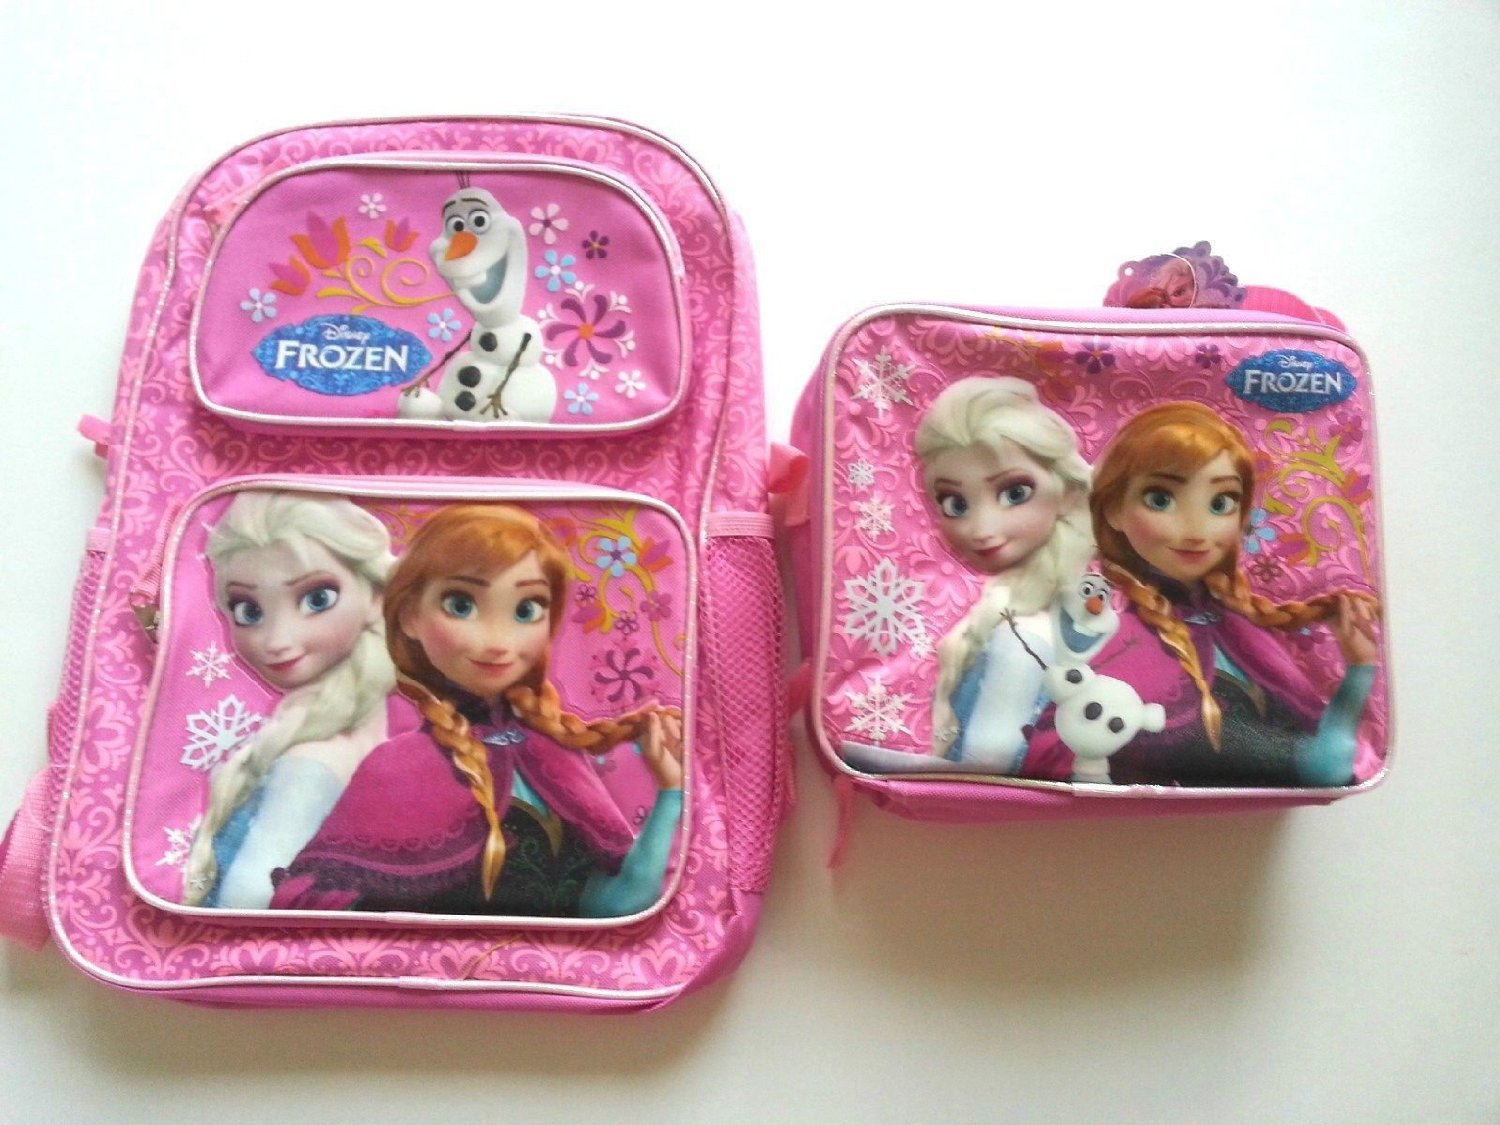 c4094e7f7d1 Amazon.com  Disney Frozen Anna   Elsa Sparkle 16  Everything Else